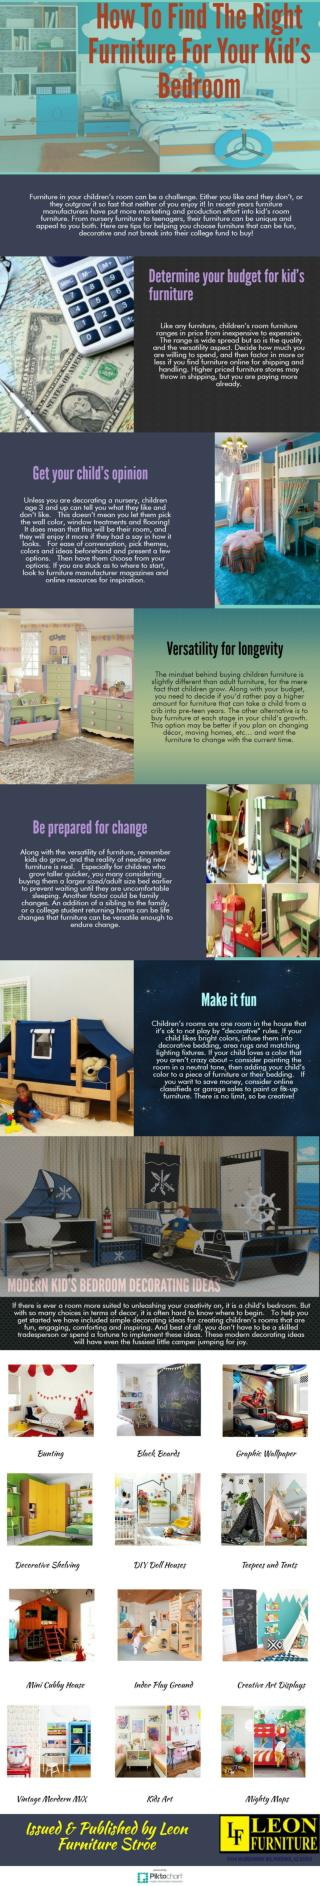 How To Find The Right Furniture For Your Kid's Bedroom